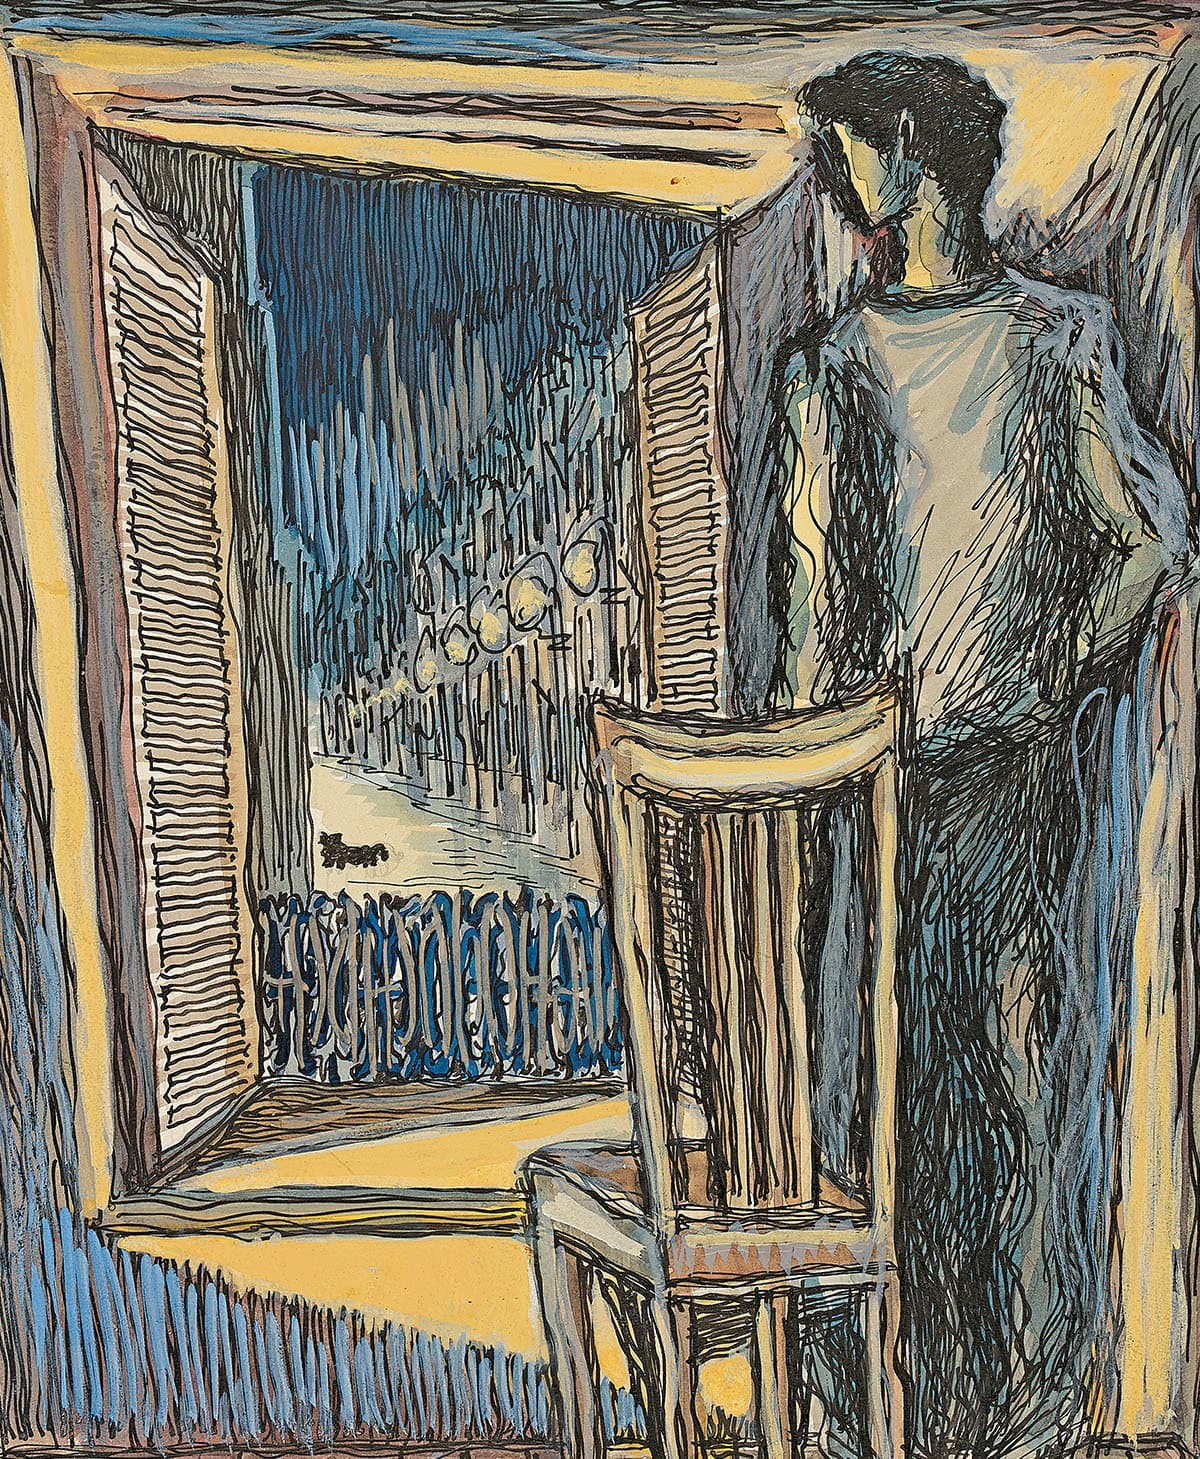 Untitled, (Meursault at the Window), 1966